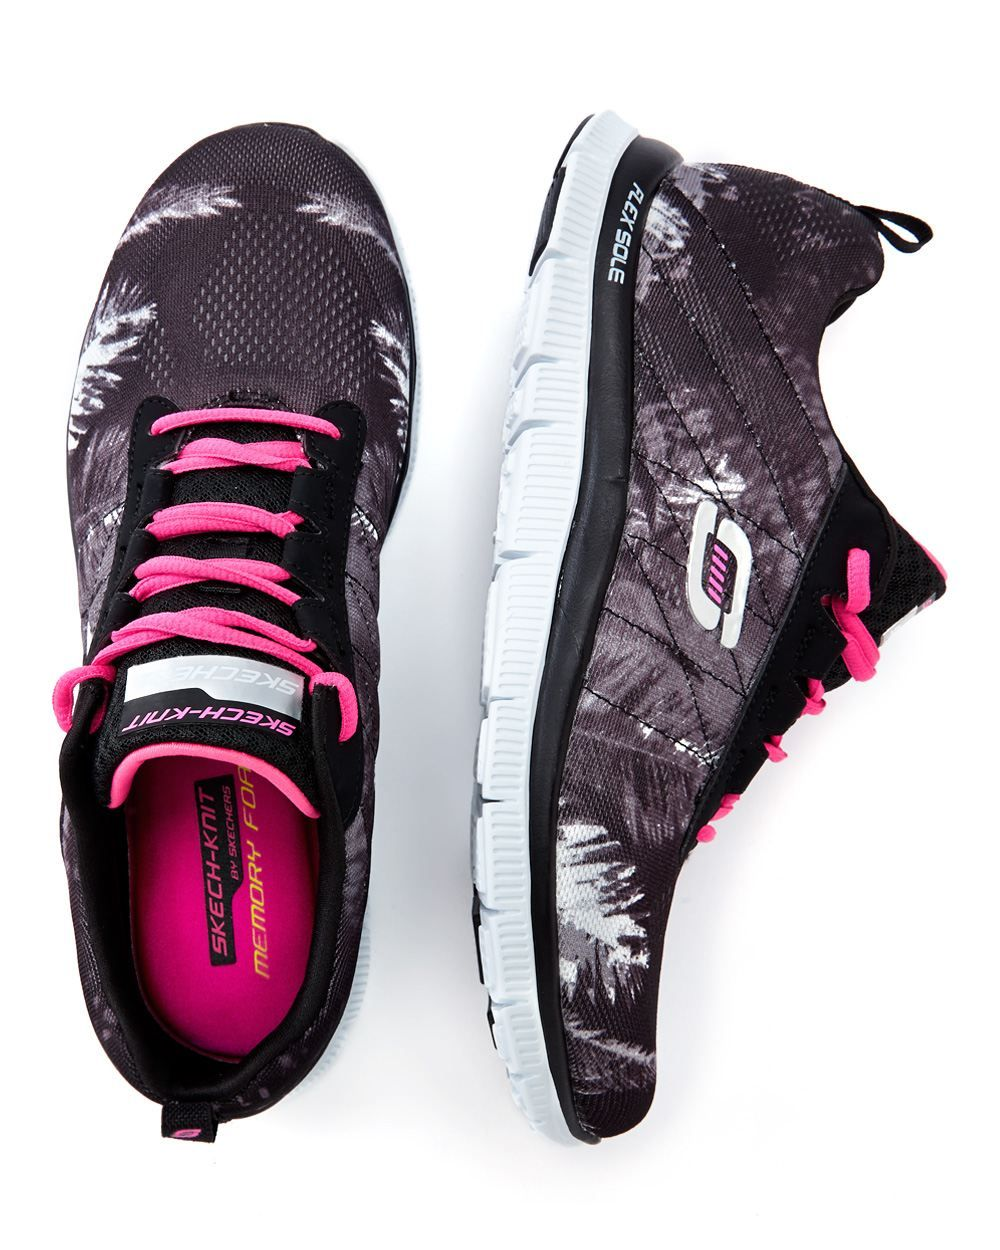 be4fa810c33a Stay fit and fabulous with these original wide-width sneakers from Skechers.  Feature a stylish print